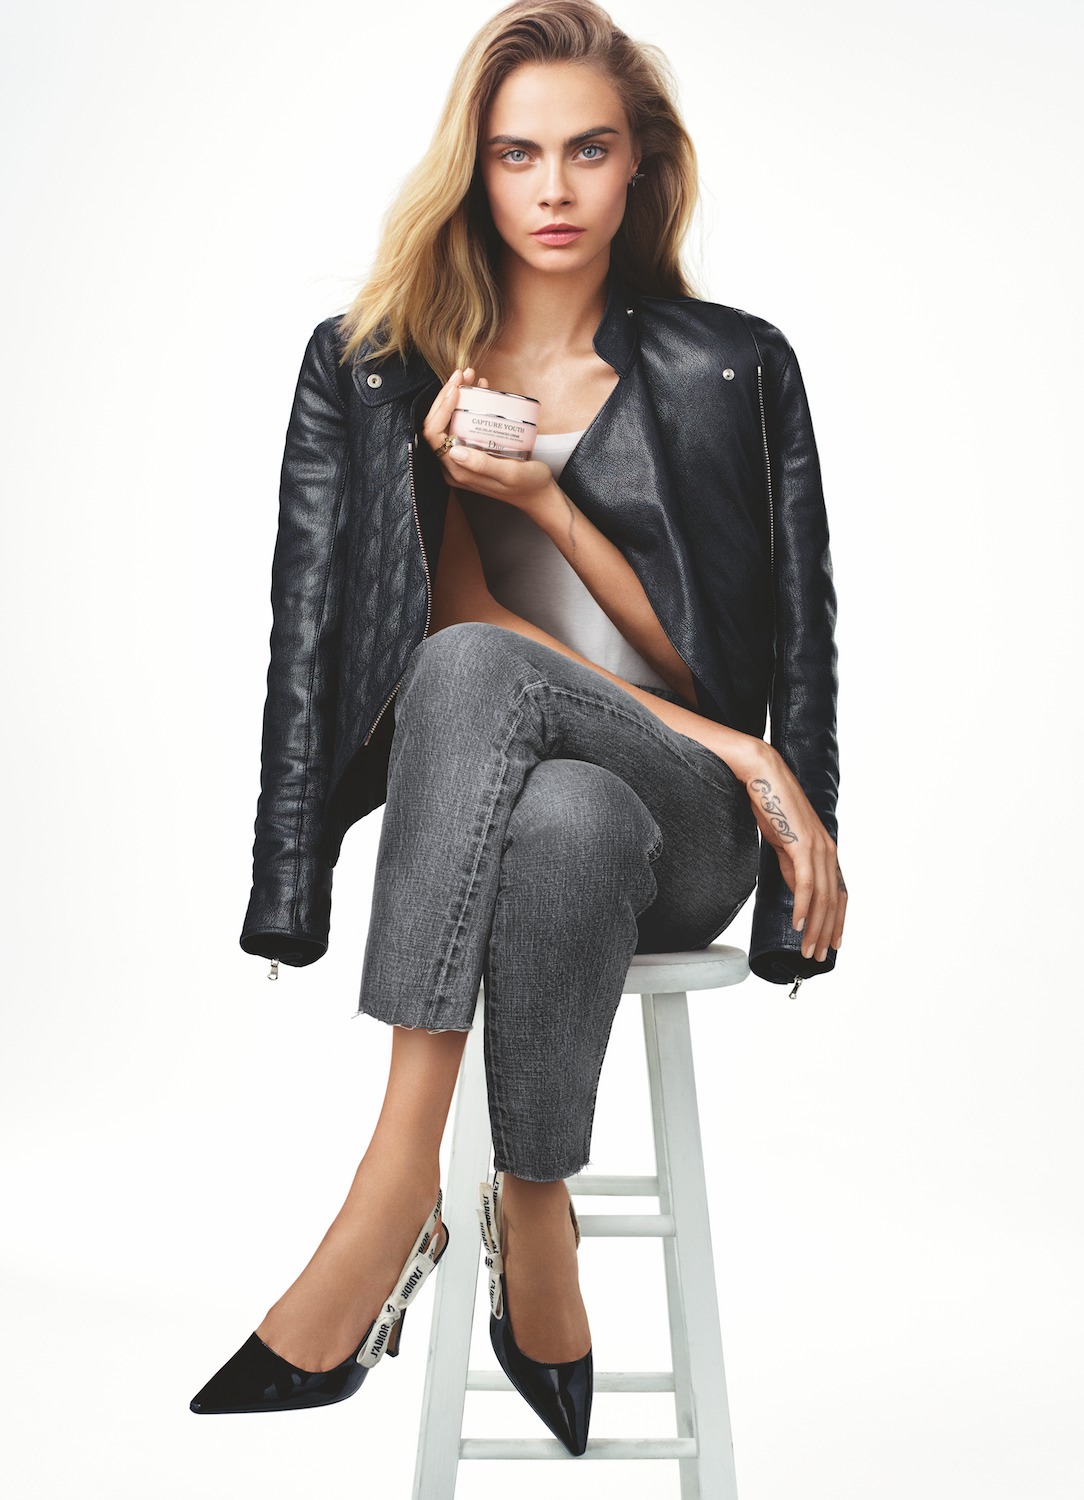 Cara Delevigne starring in Diors Capture Youth campaign